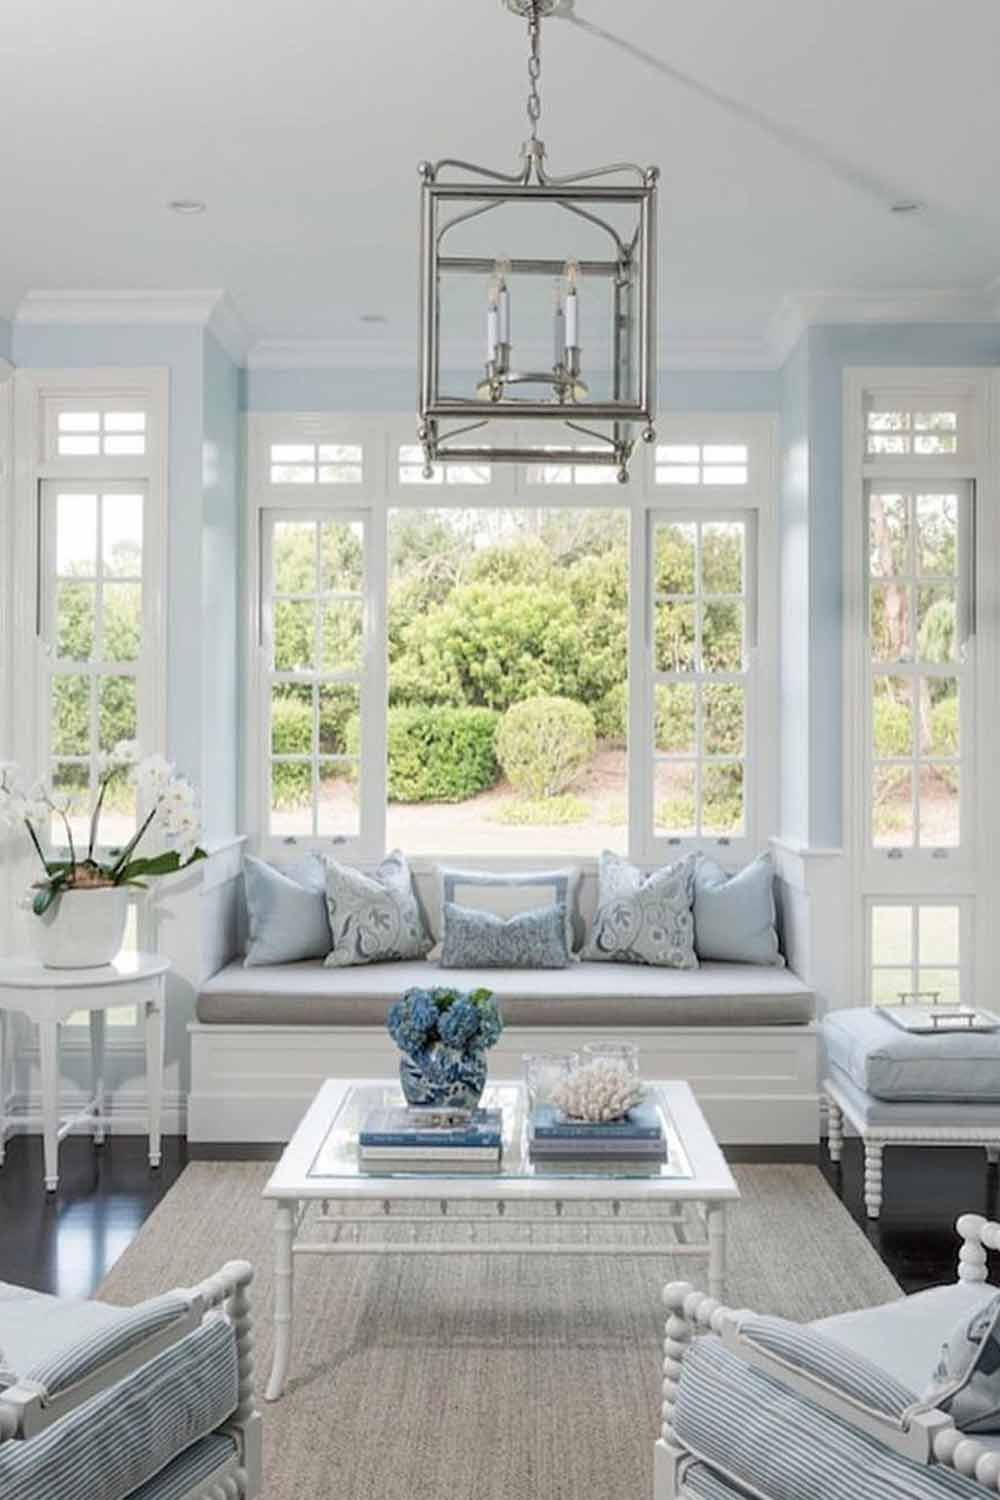 28 Sunroom Ideas The Best Combo Of Indoor And Outdoor In One In 2020 Sunroom Designs Sunroom Decorating Home Decor